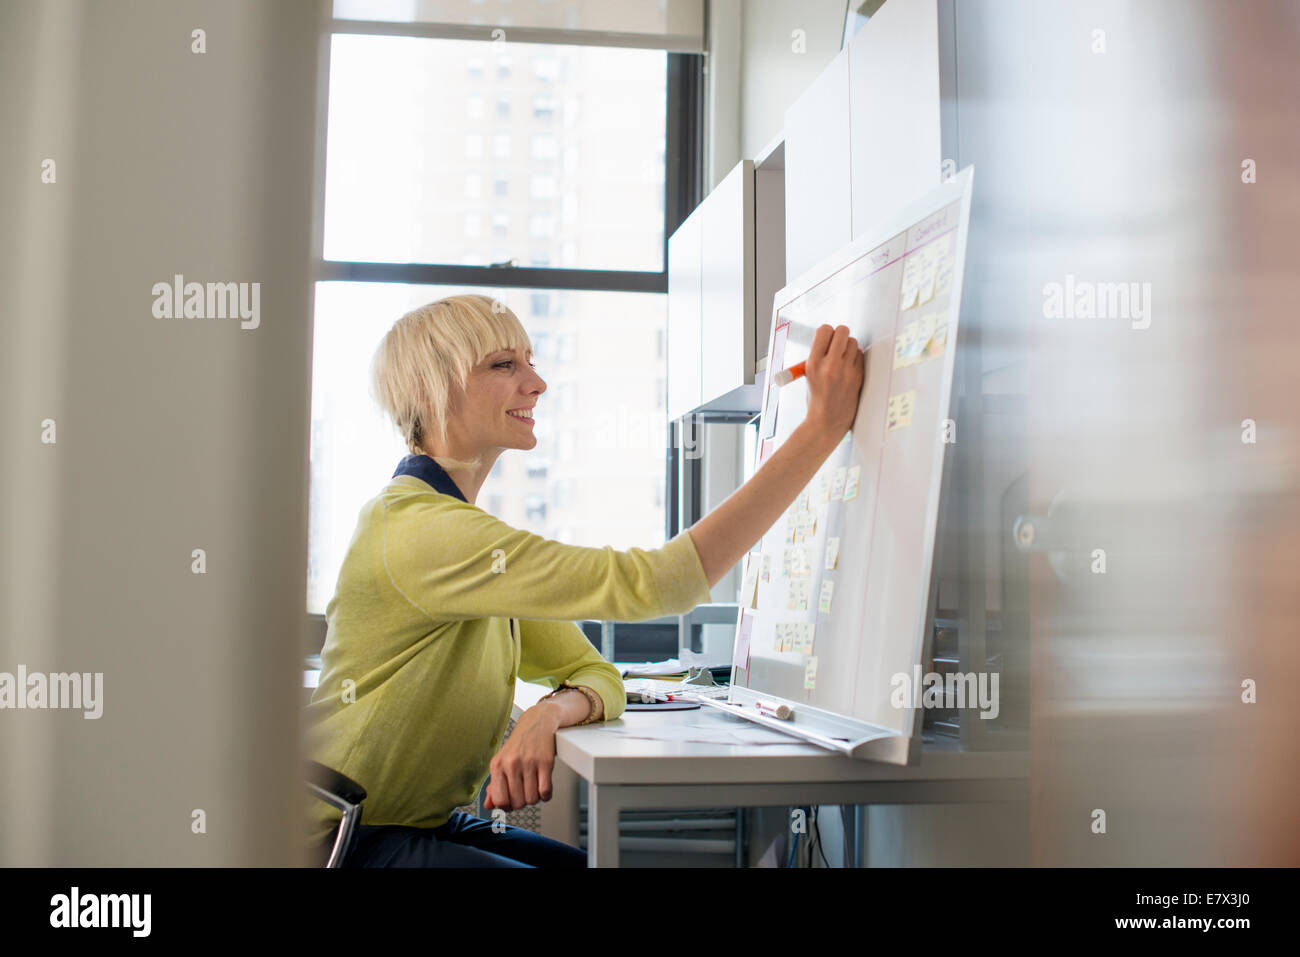 A woman planning using a wall chart and post it notes. - Stock Image